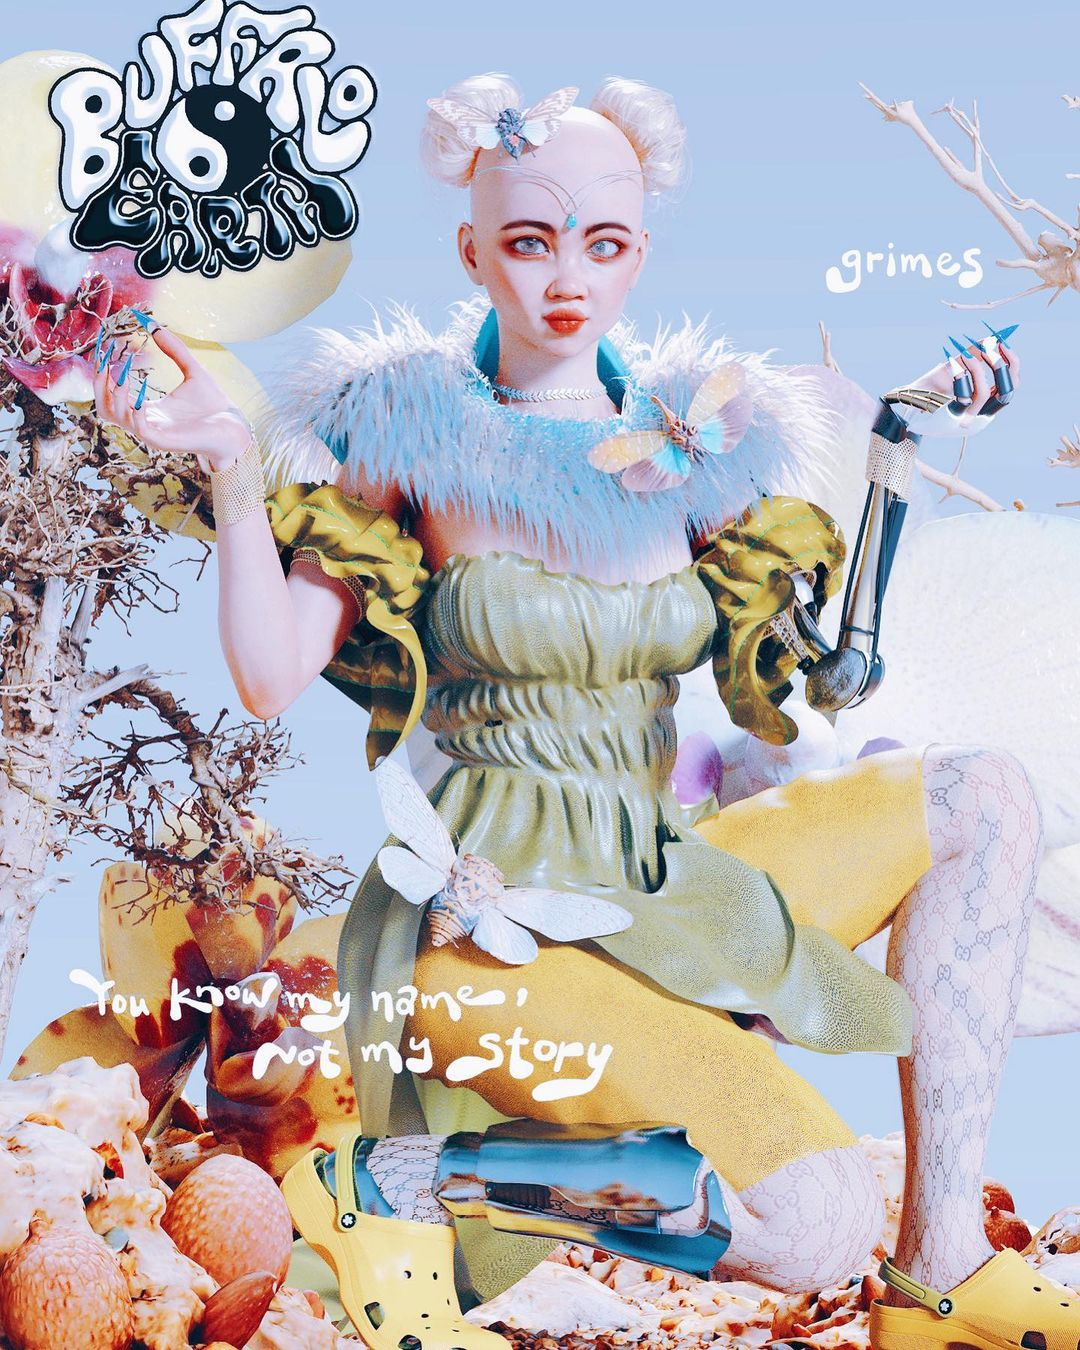 Grimes mixes explanations of artificial intelligence and communism in her latest video on tiktok